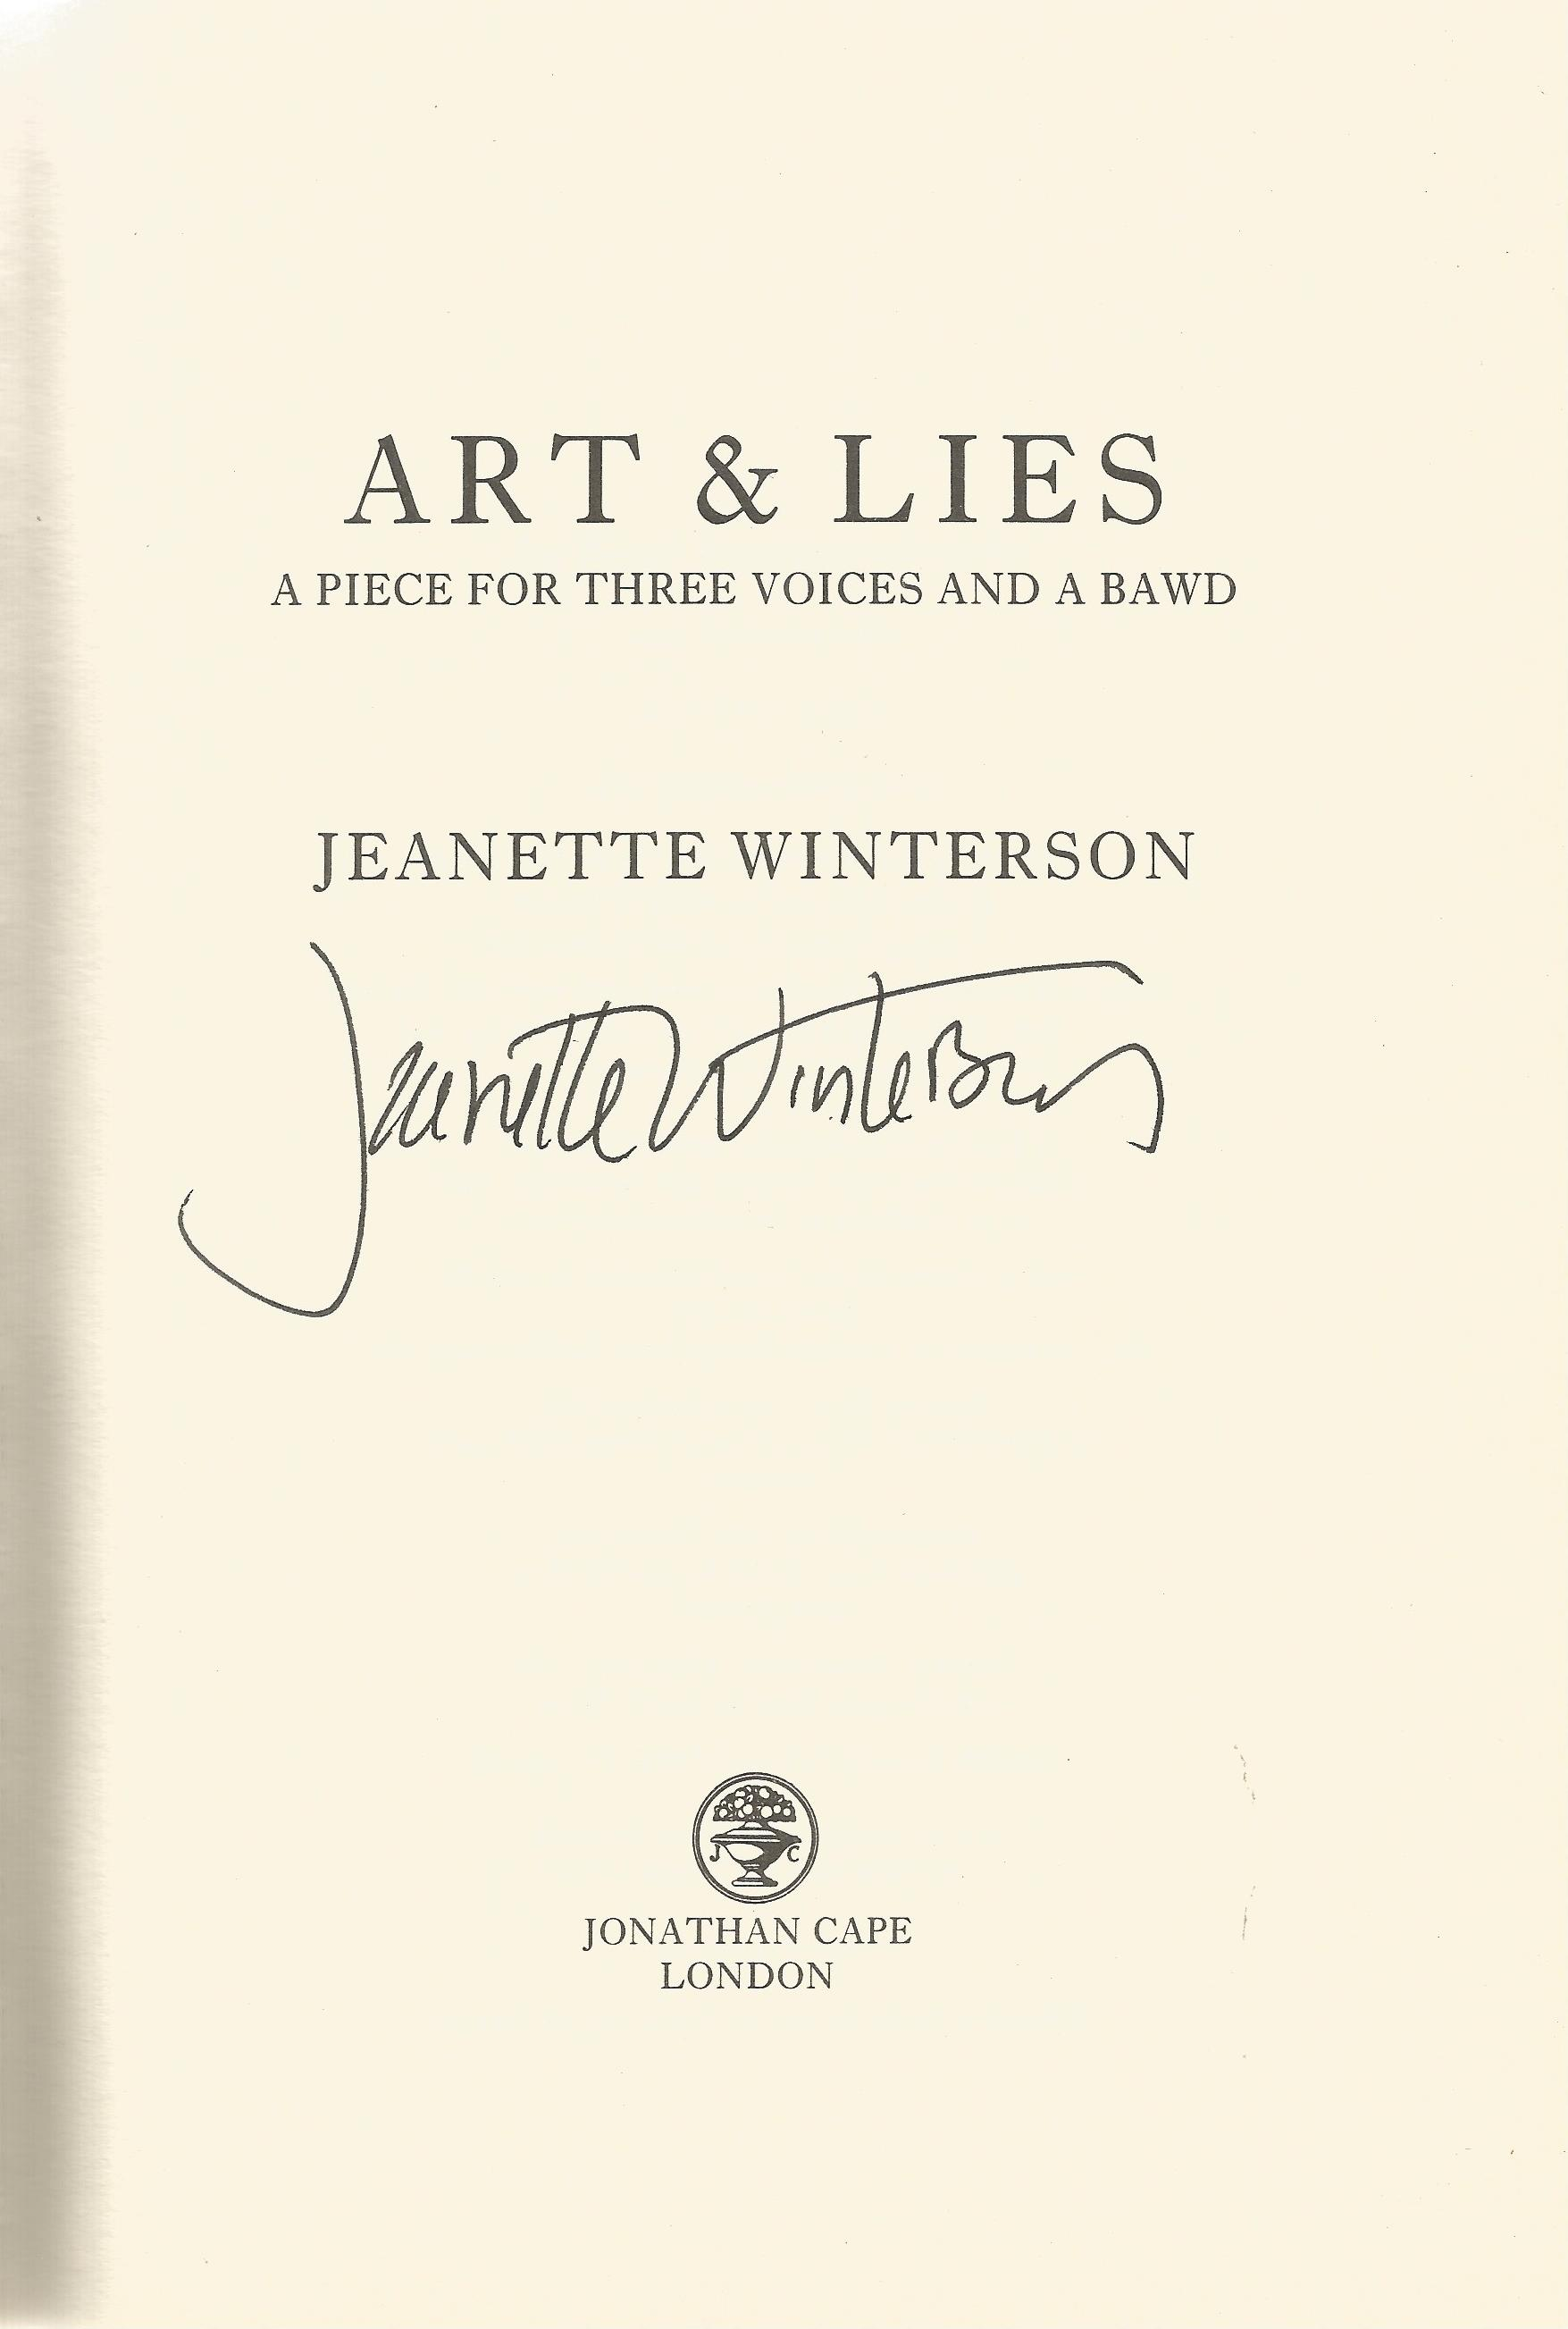 Jeanette Winterson Hardback Book Art & Lies signed by the Author on the Title Page dust cover and - Image 2 of 2